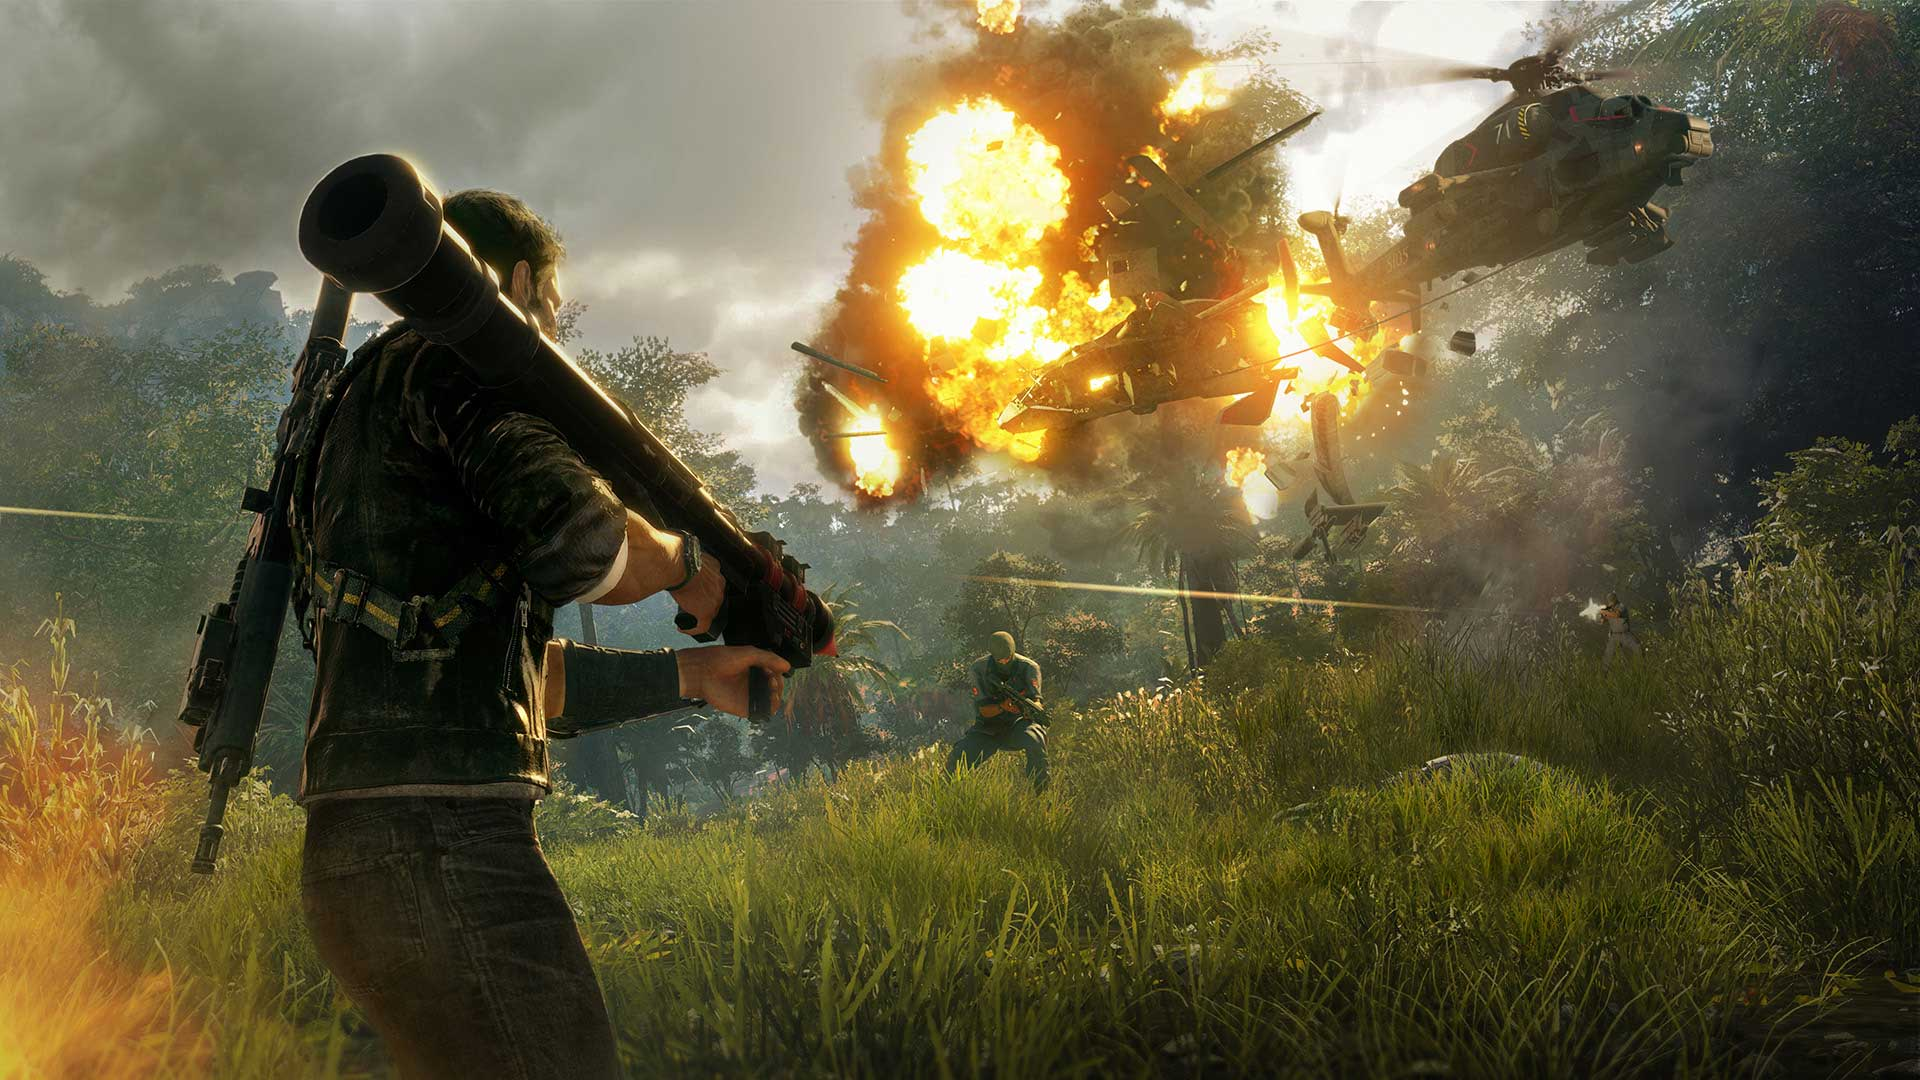 You can get the visually impressive Just Cause 4 for free this month